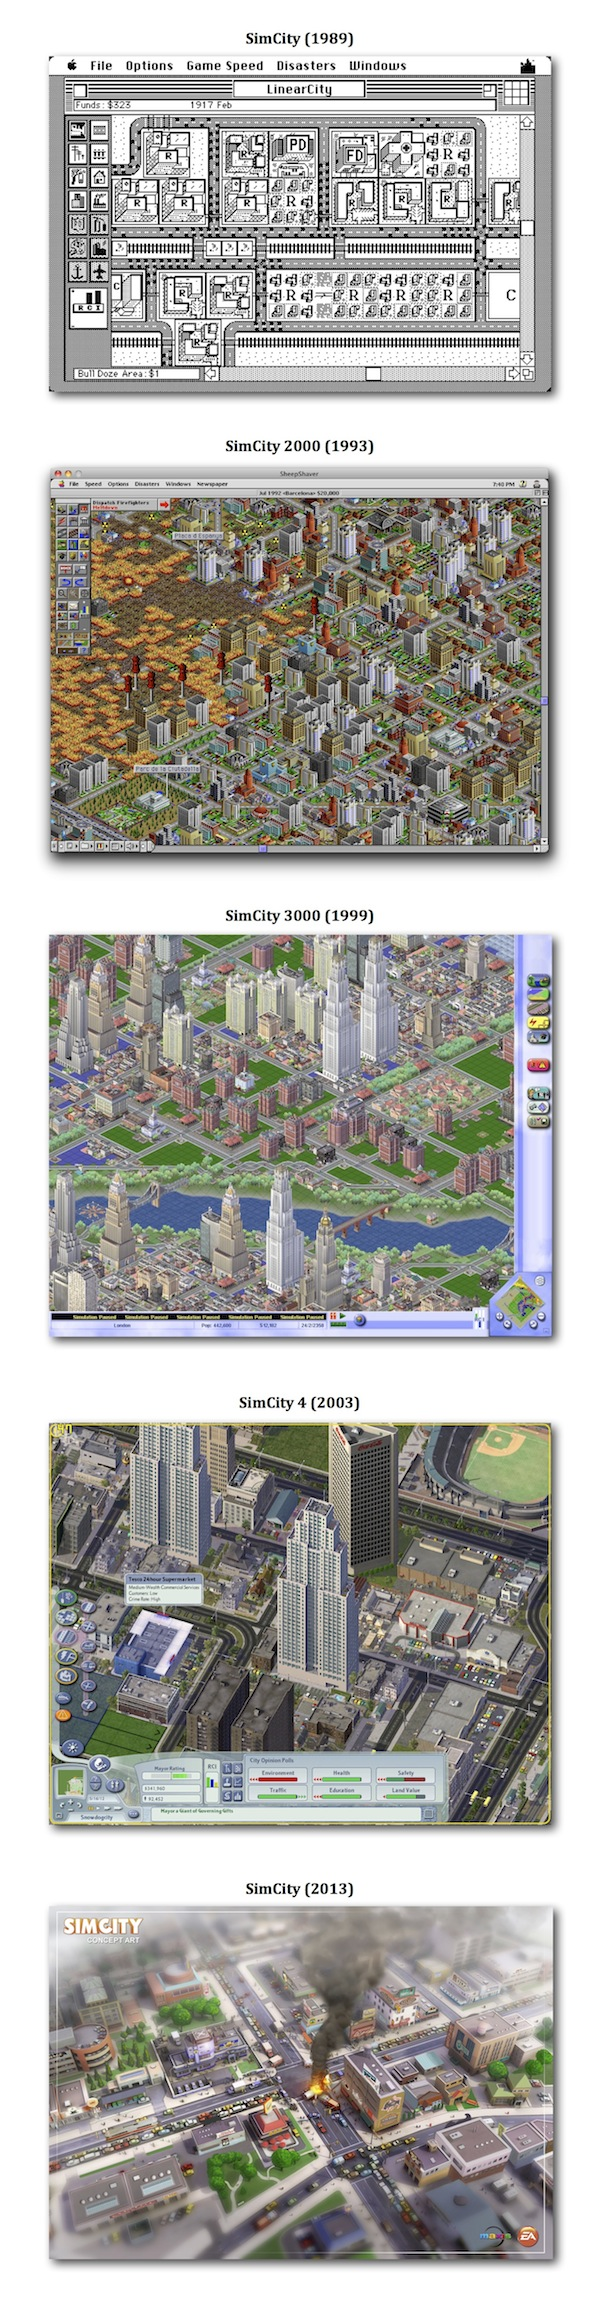 SimCity History